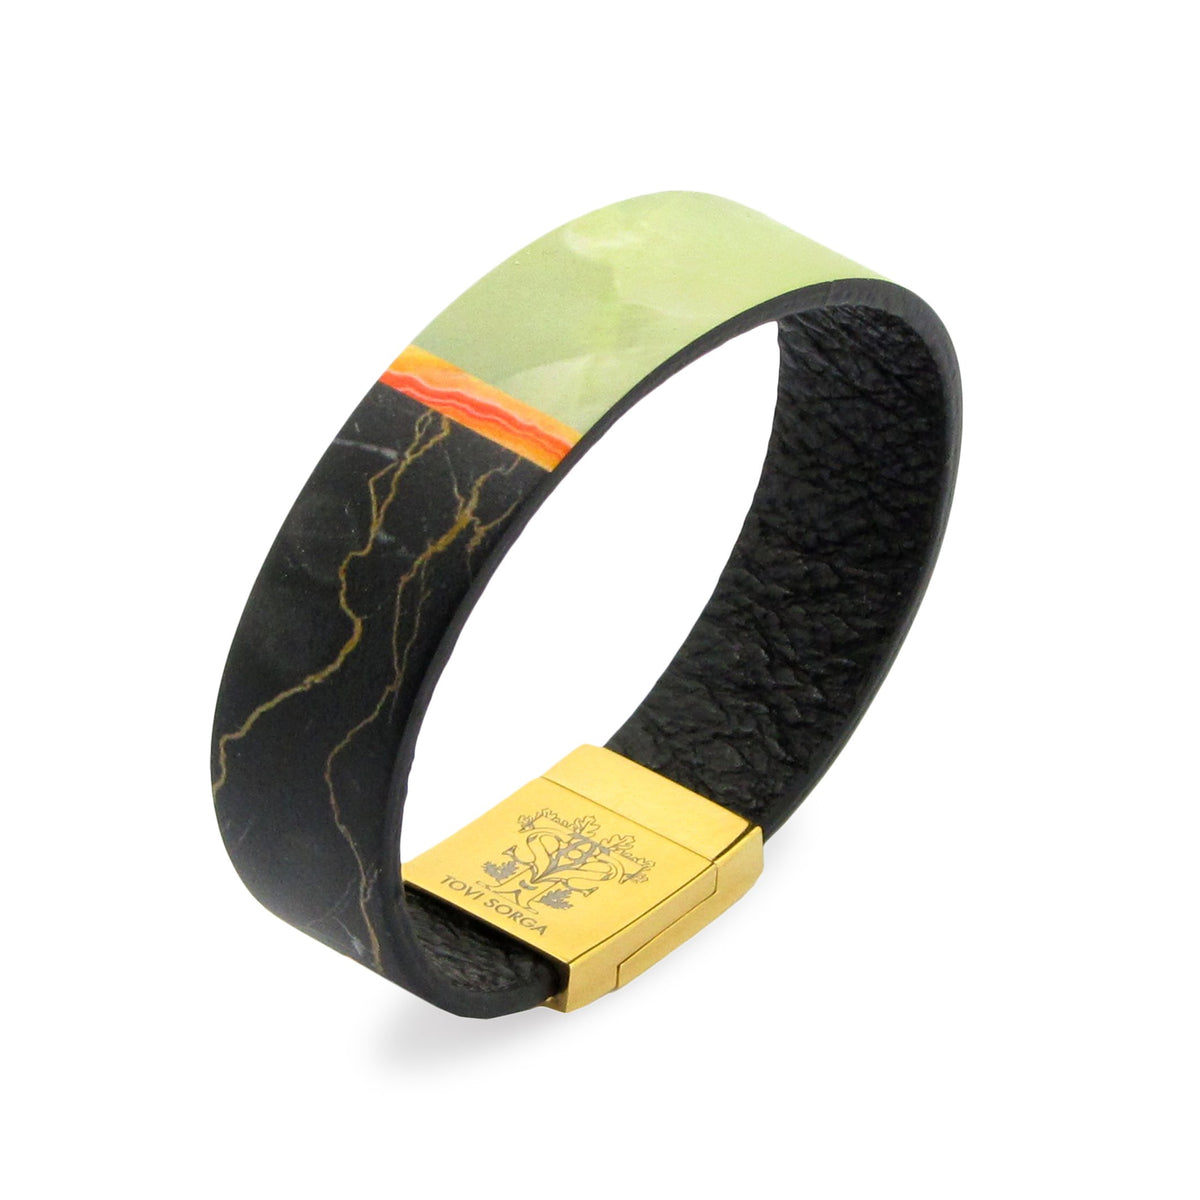 Leather Contactless Payment Bracelet: Black Jade Contactless Payment Bracelet Tovi Sorga Extra-Small Black